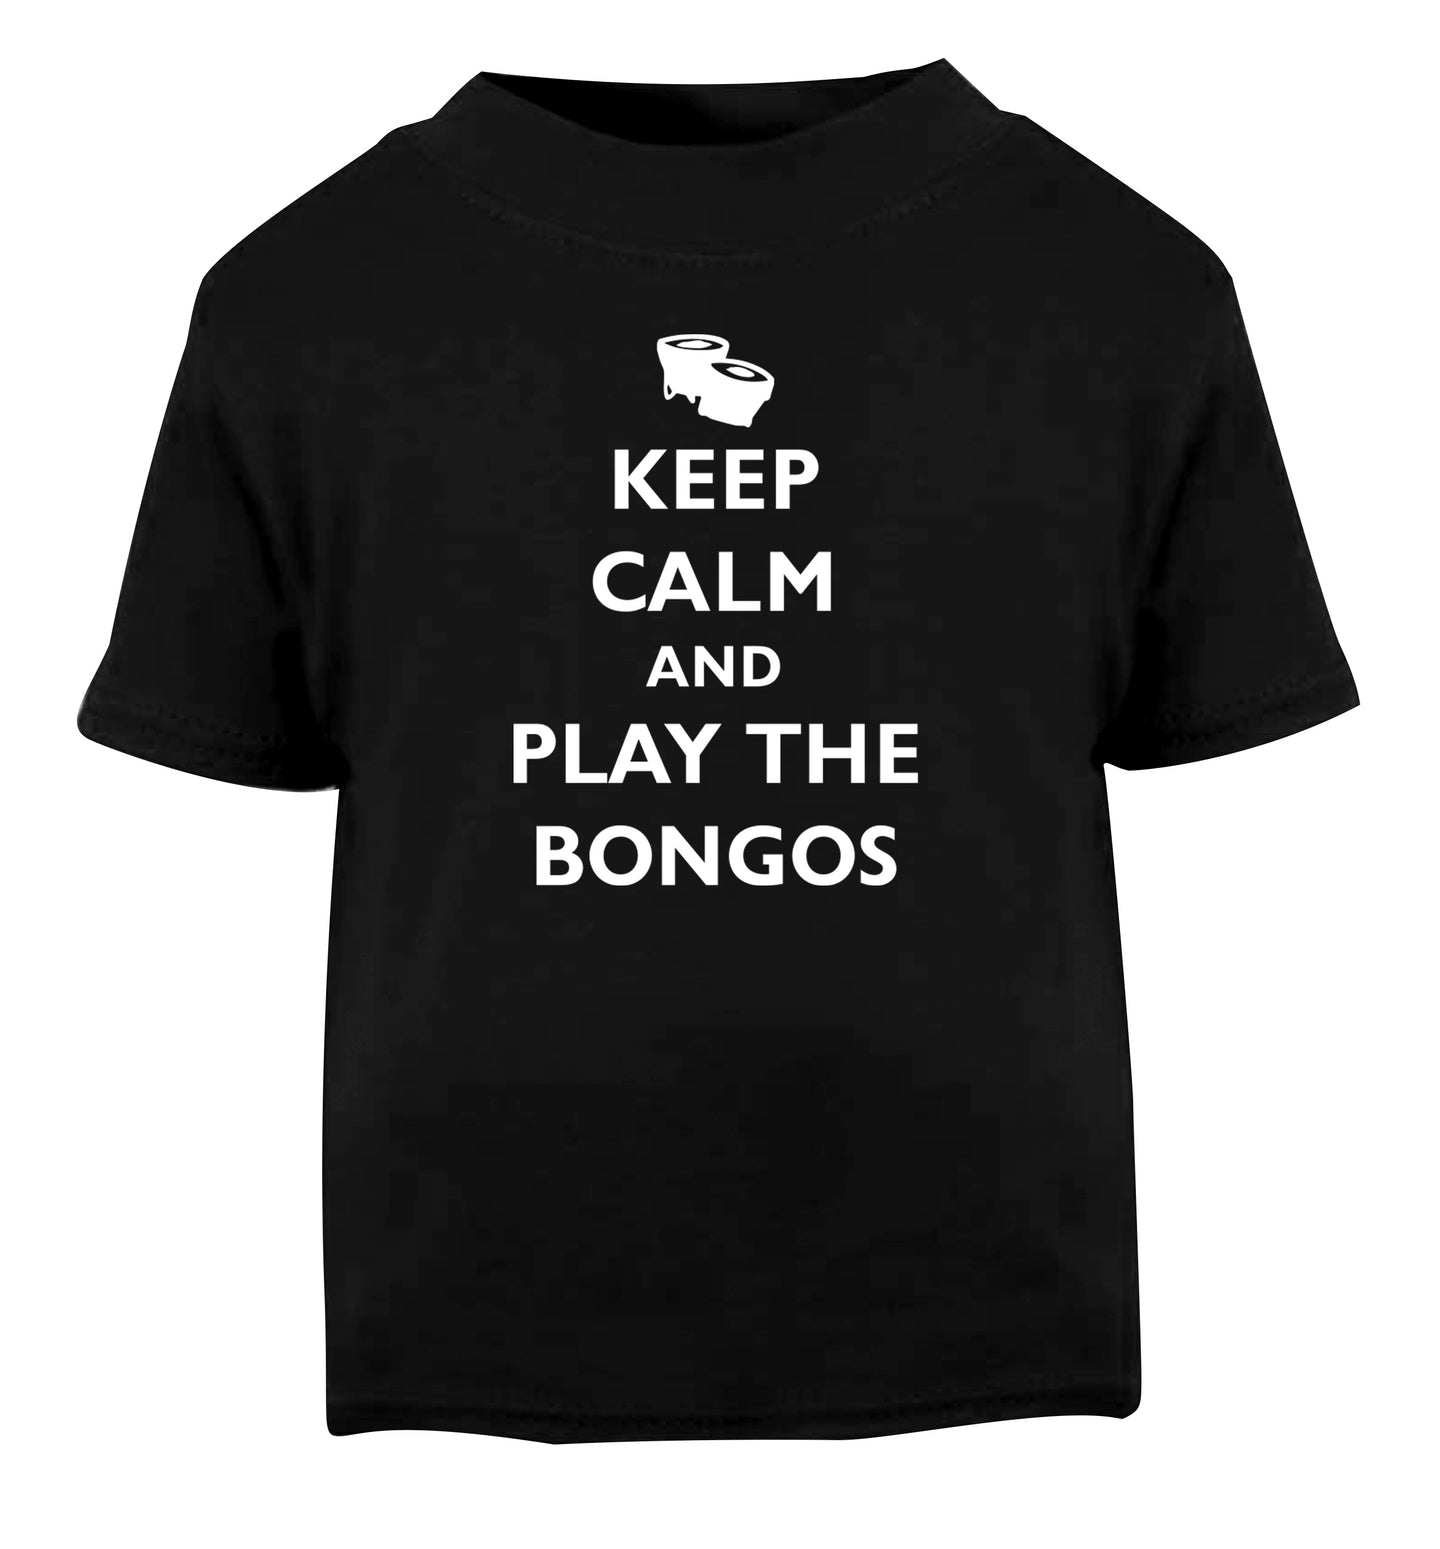 Keep calm and play the bongos Black Baby Toddler Tshirt 2 years